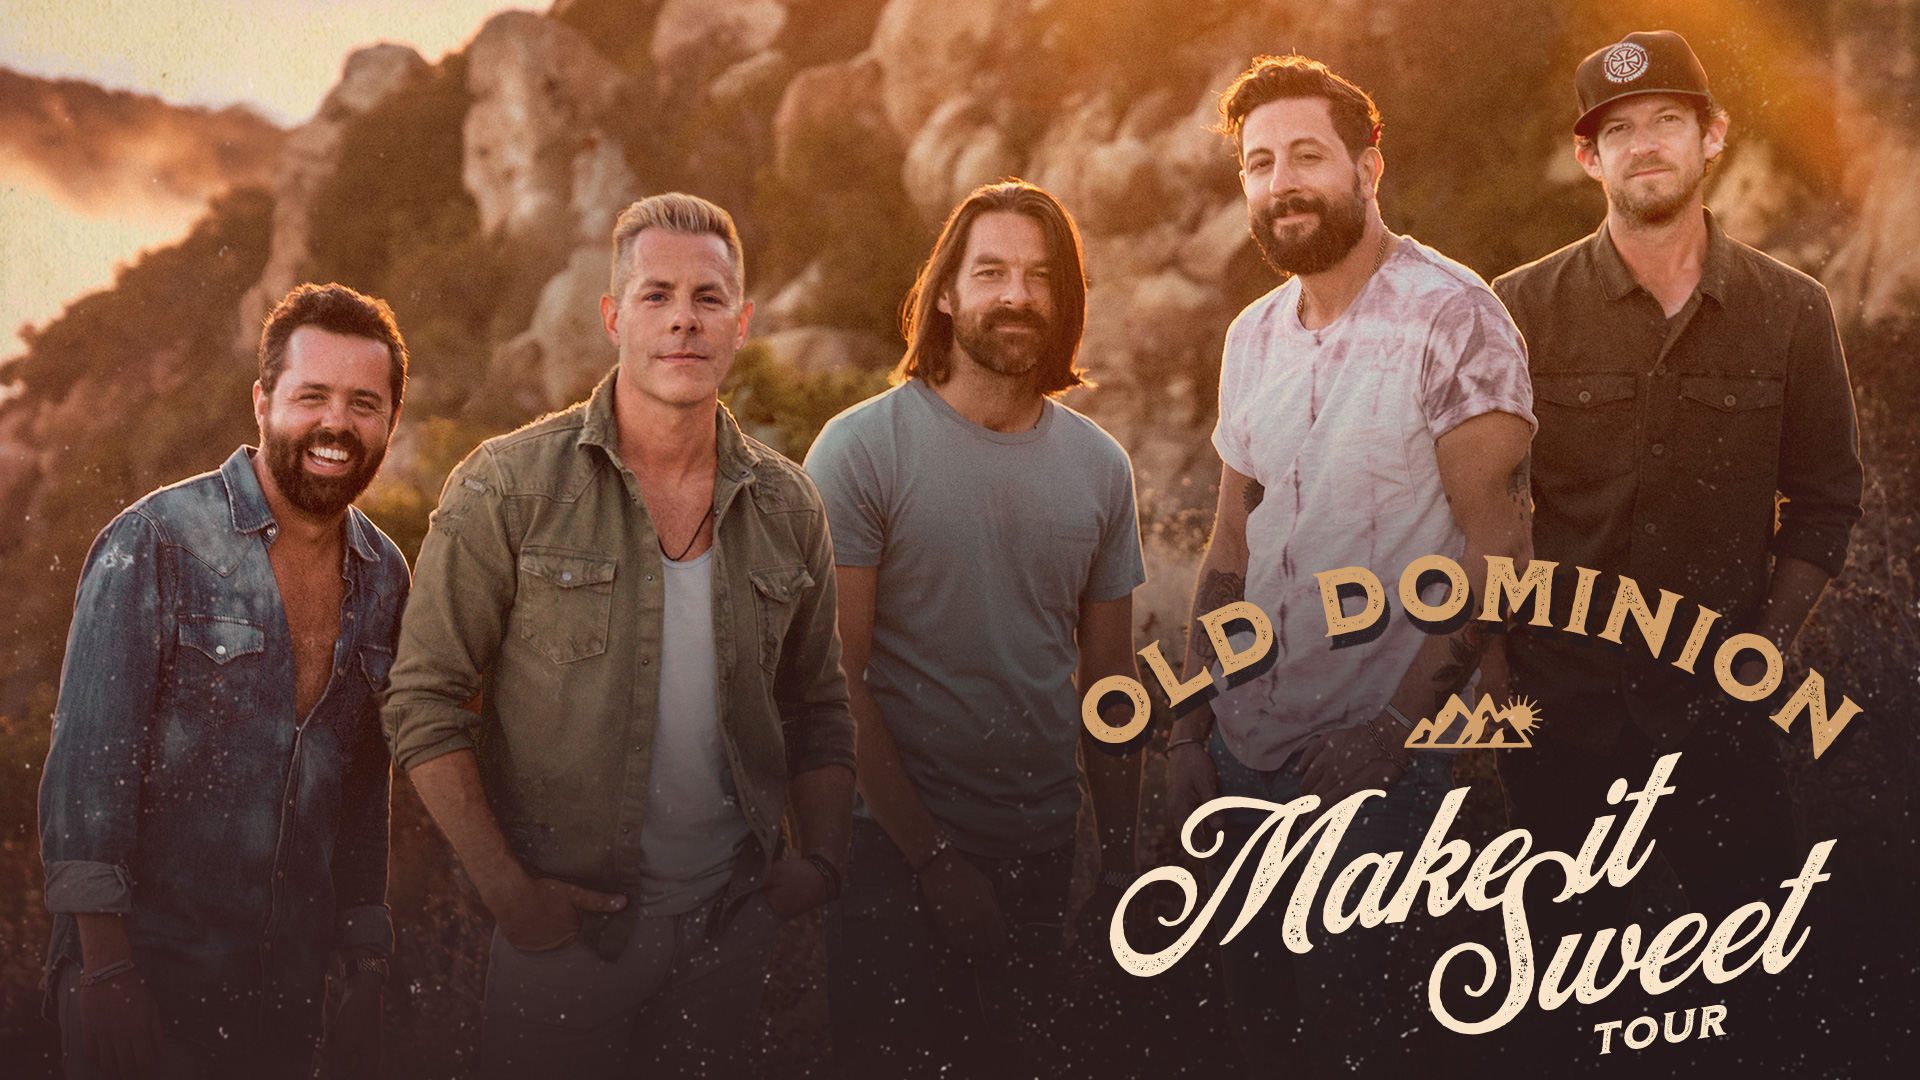 Feature: https://www.axs.com/events/367921/old-dominion-tickets